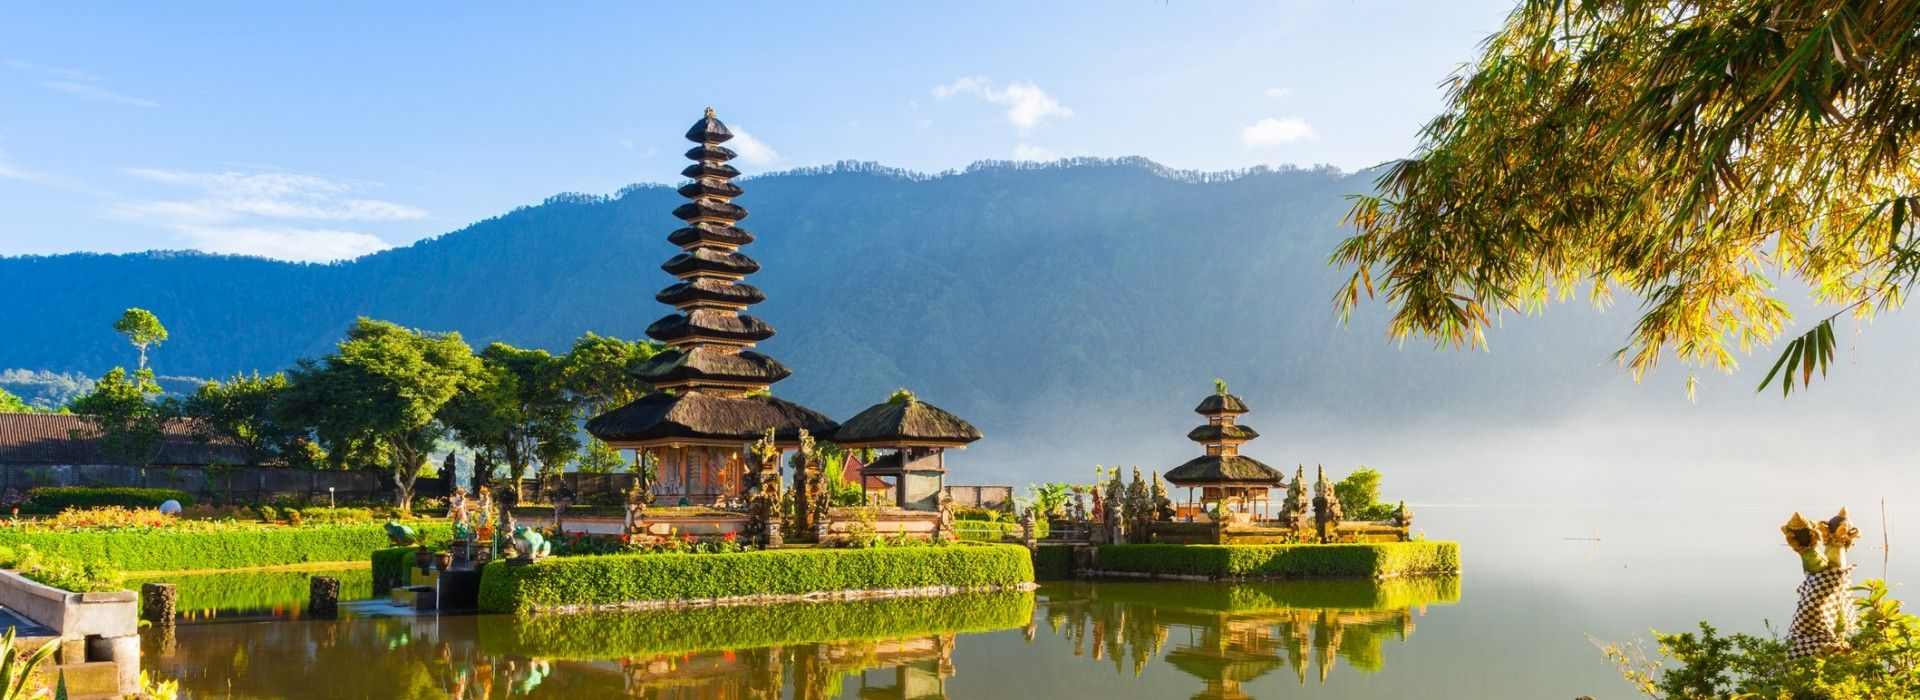 Farm and plantation visits Tours in Indonesia